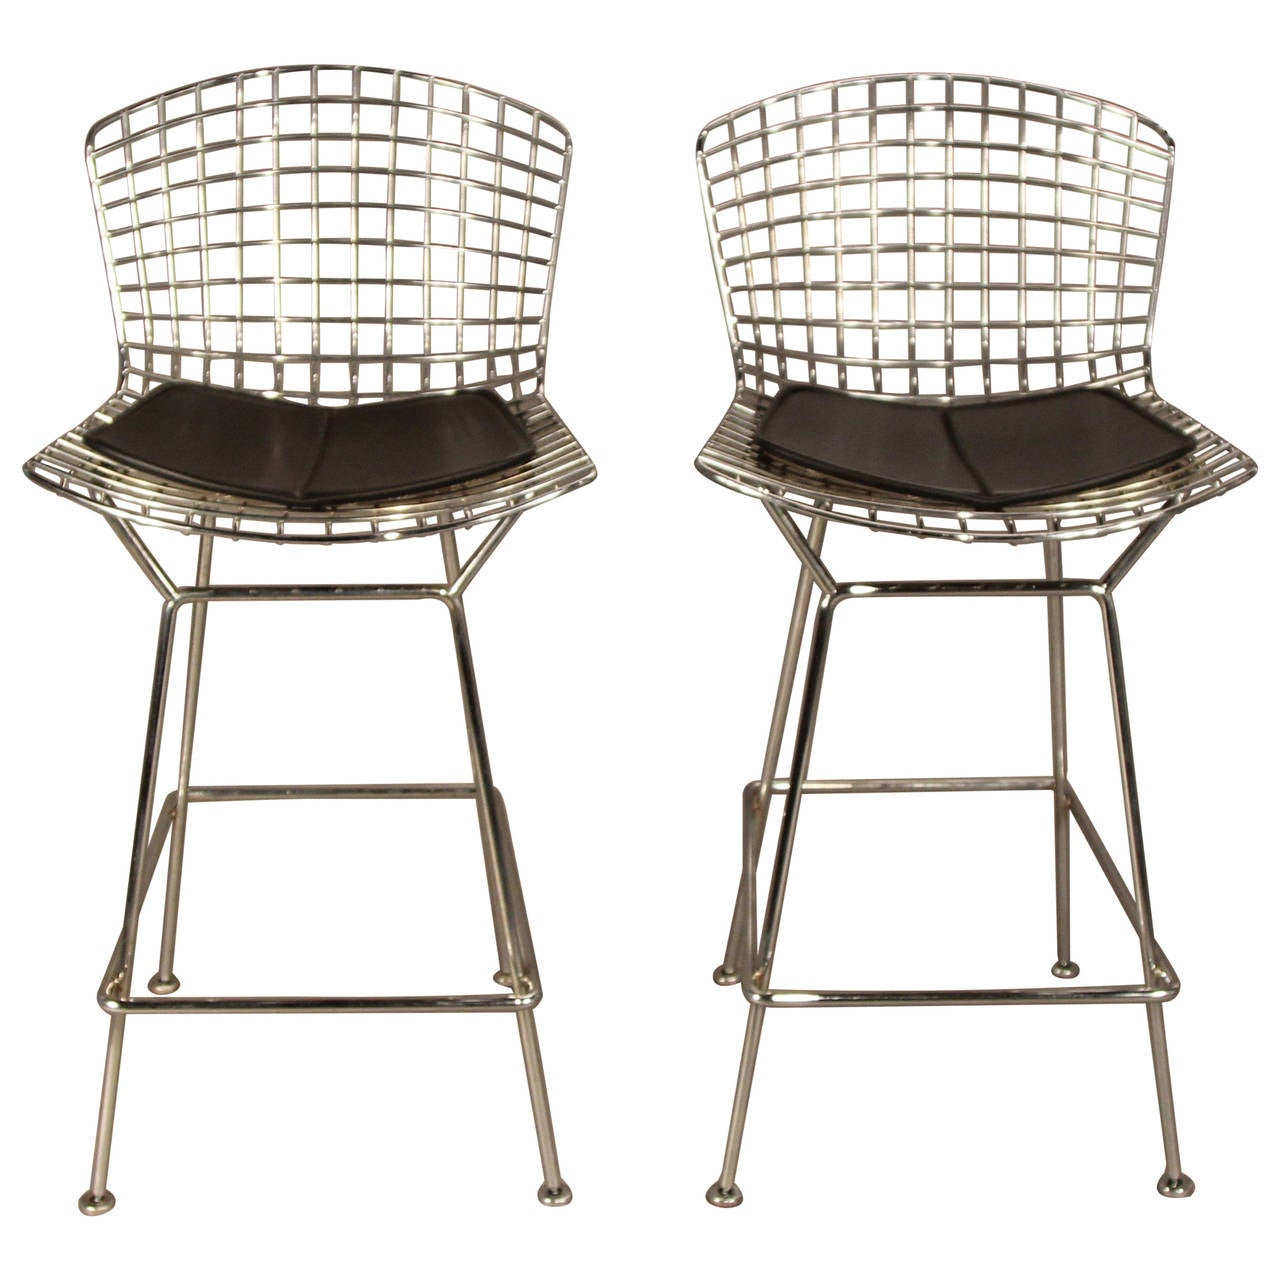 Pair Of Harry Bertoia For Knoll Bar Stools In Chrome With